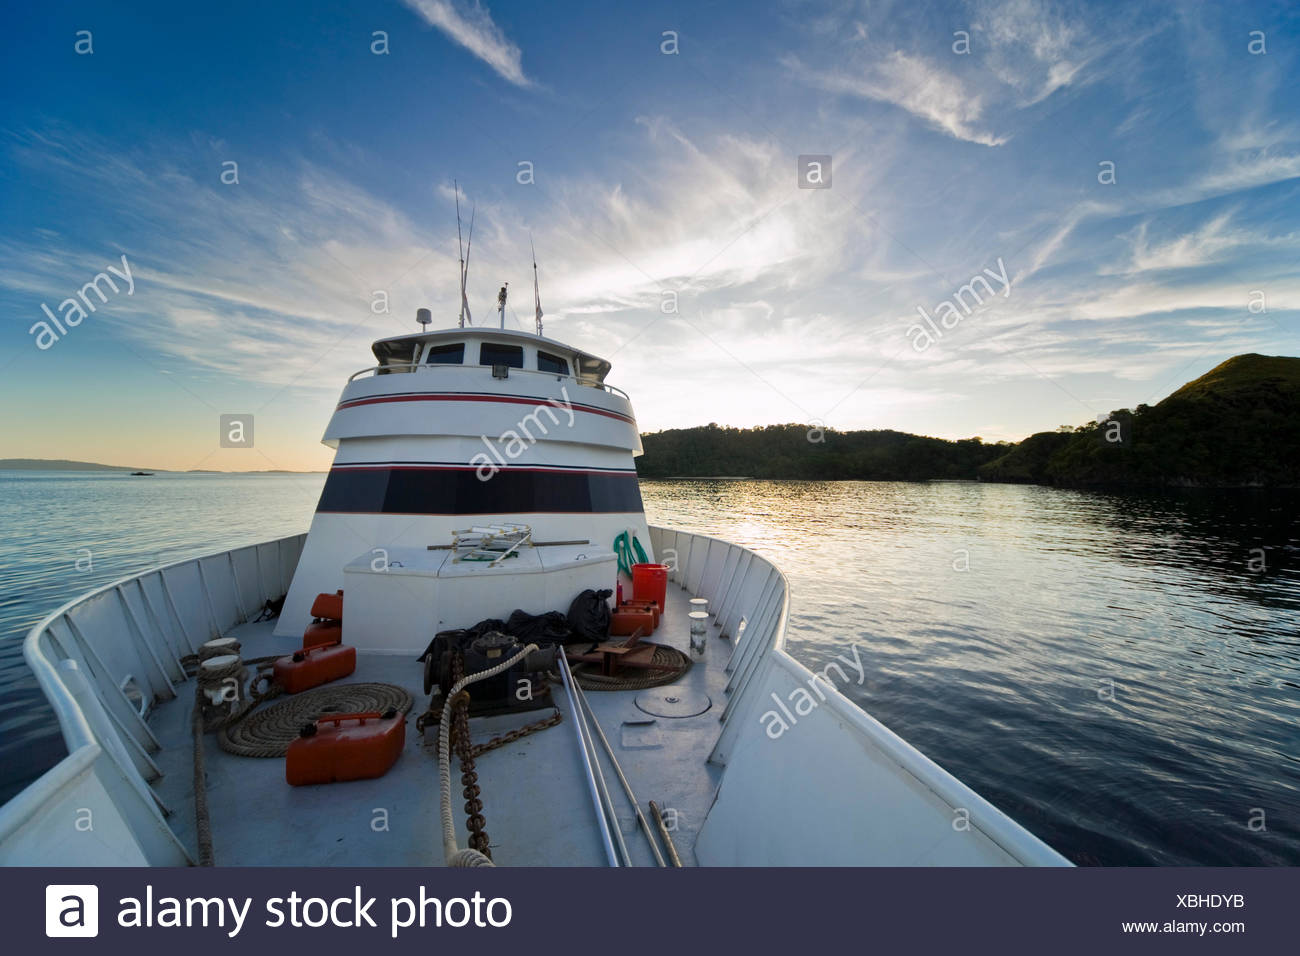 Bow of a boat in front of tropical landscape, Sulawesi, Indonesia, Southeast Asia - Stock Image